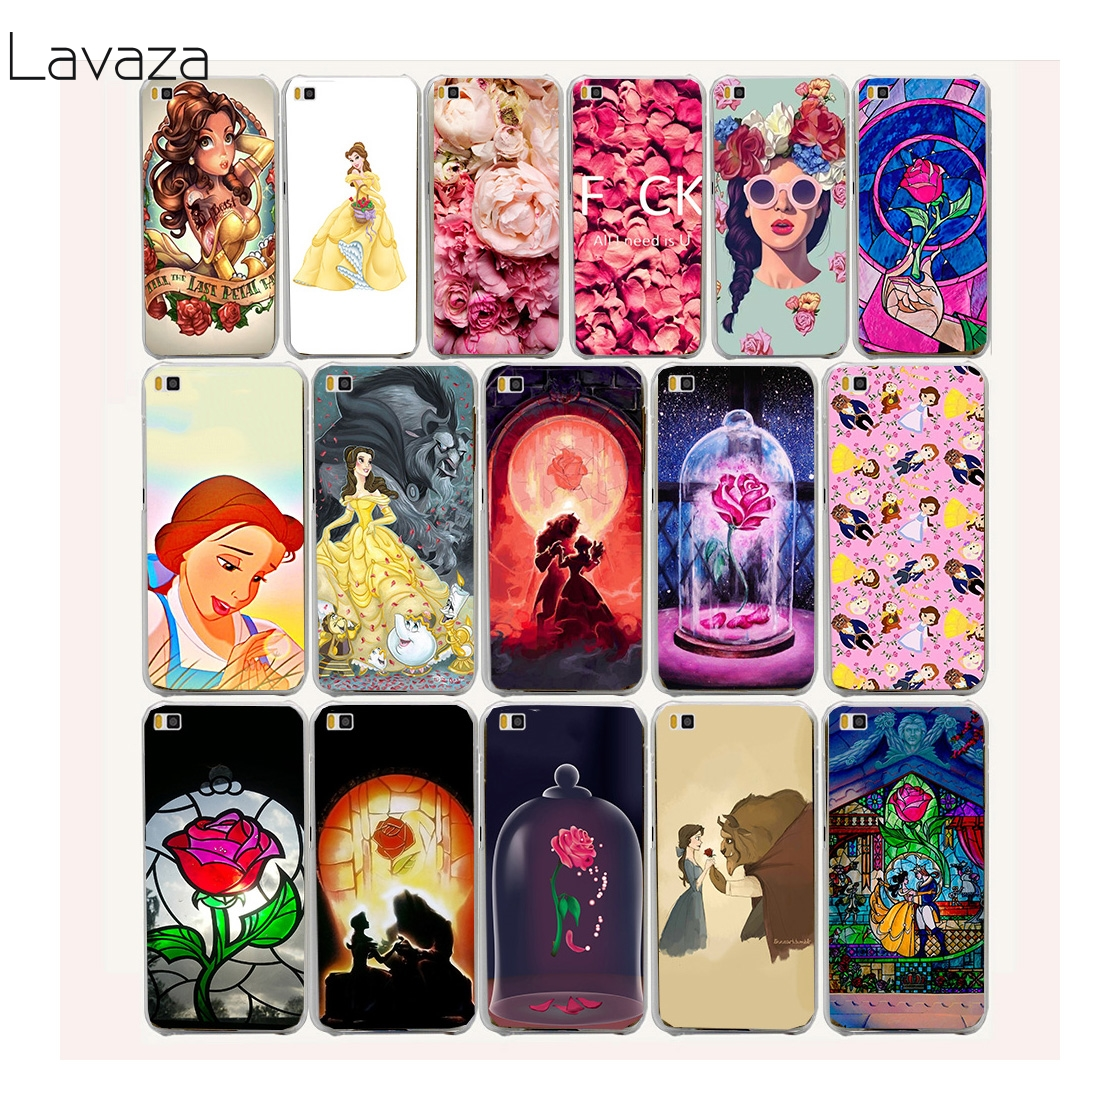 Lavaza 25af Belle s Beauty and the Beast Hard case for Huawei P smart P20 P10 P8 P9 lite mini Plus Pro 2015 2016 2017 ...